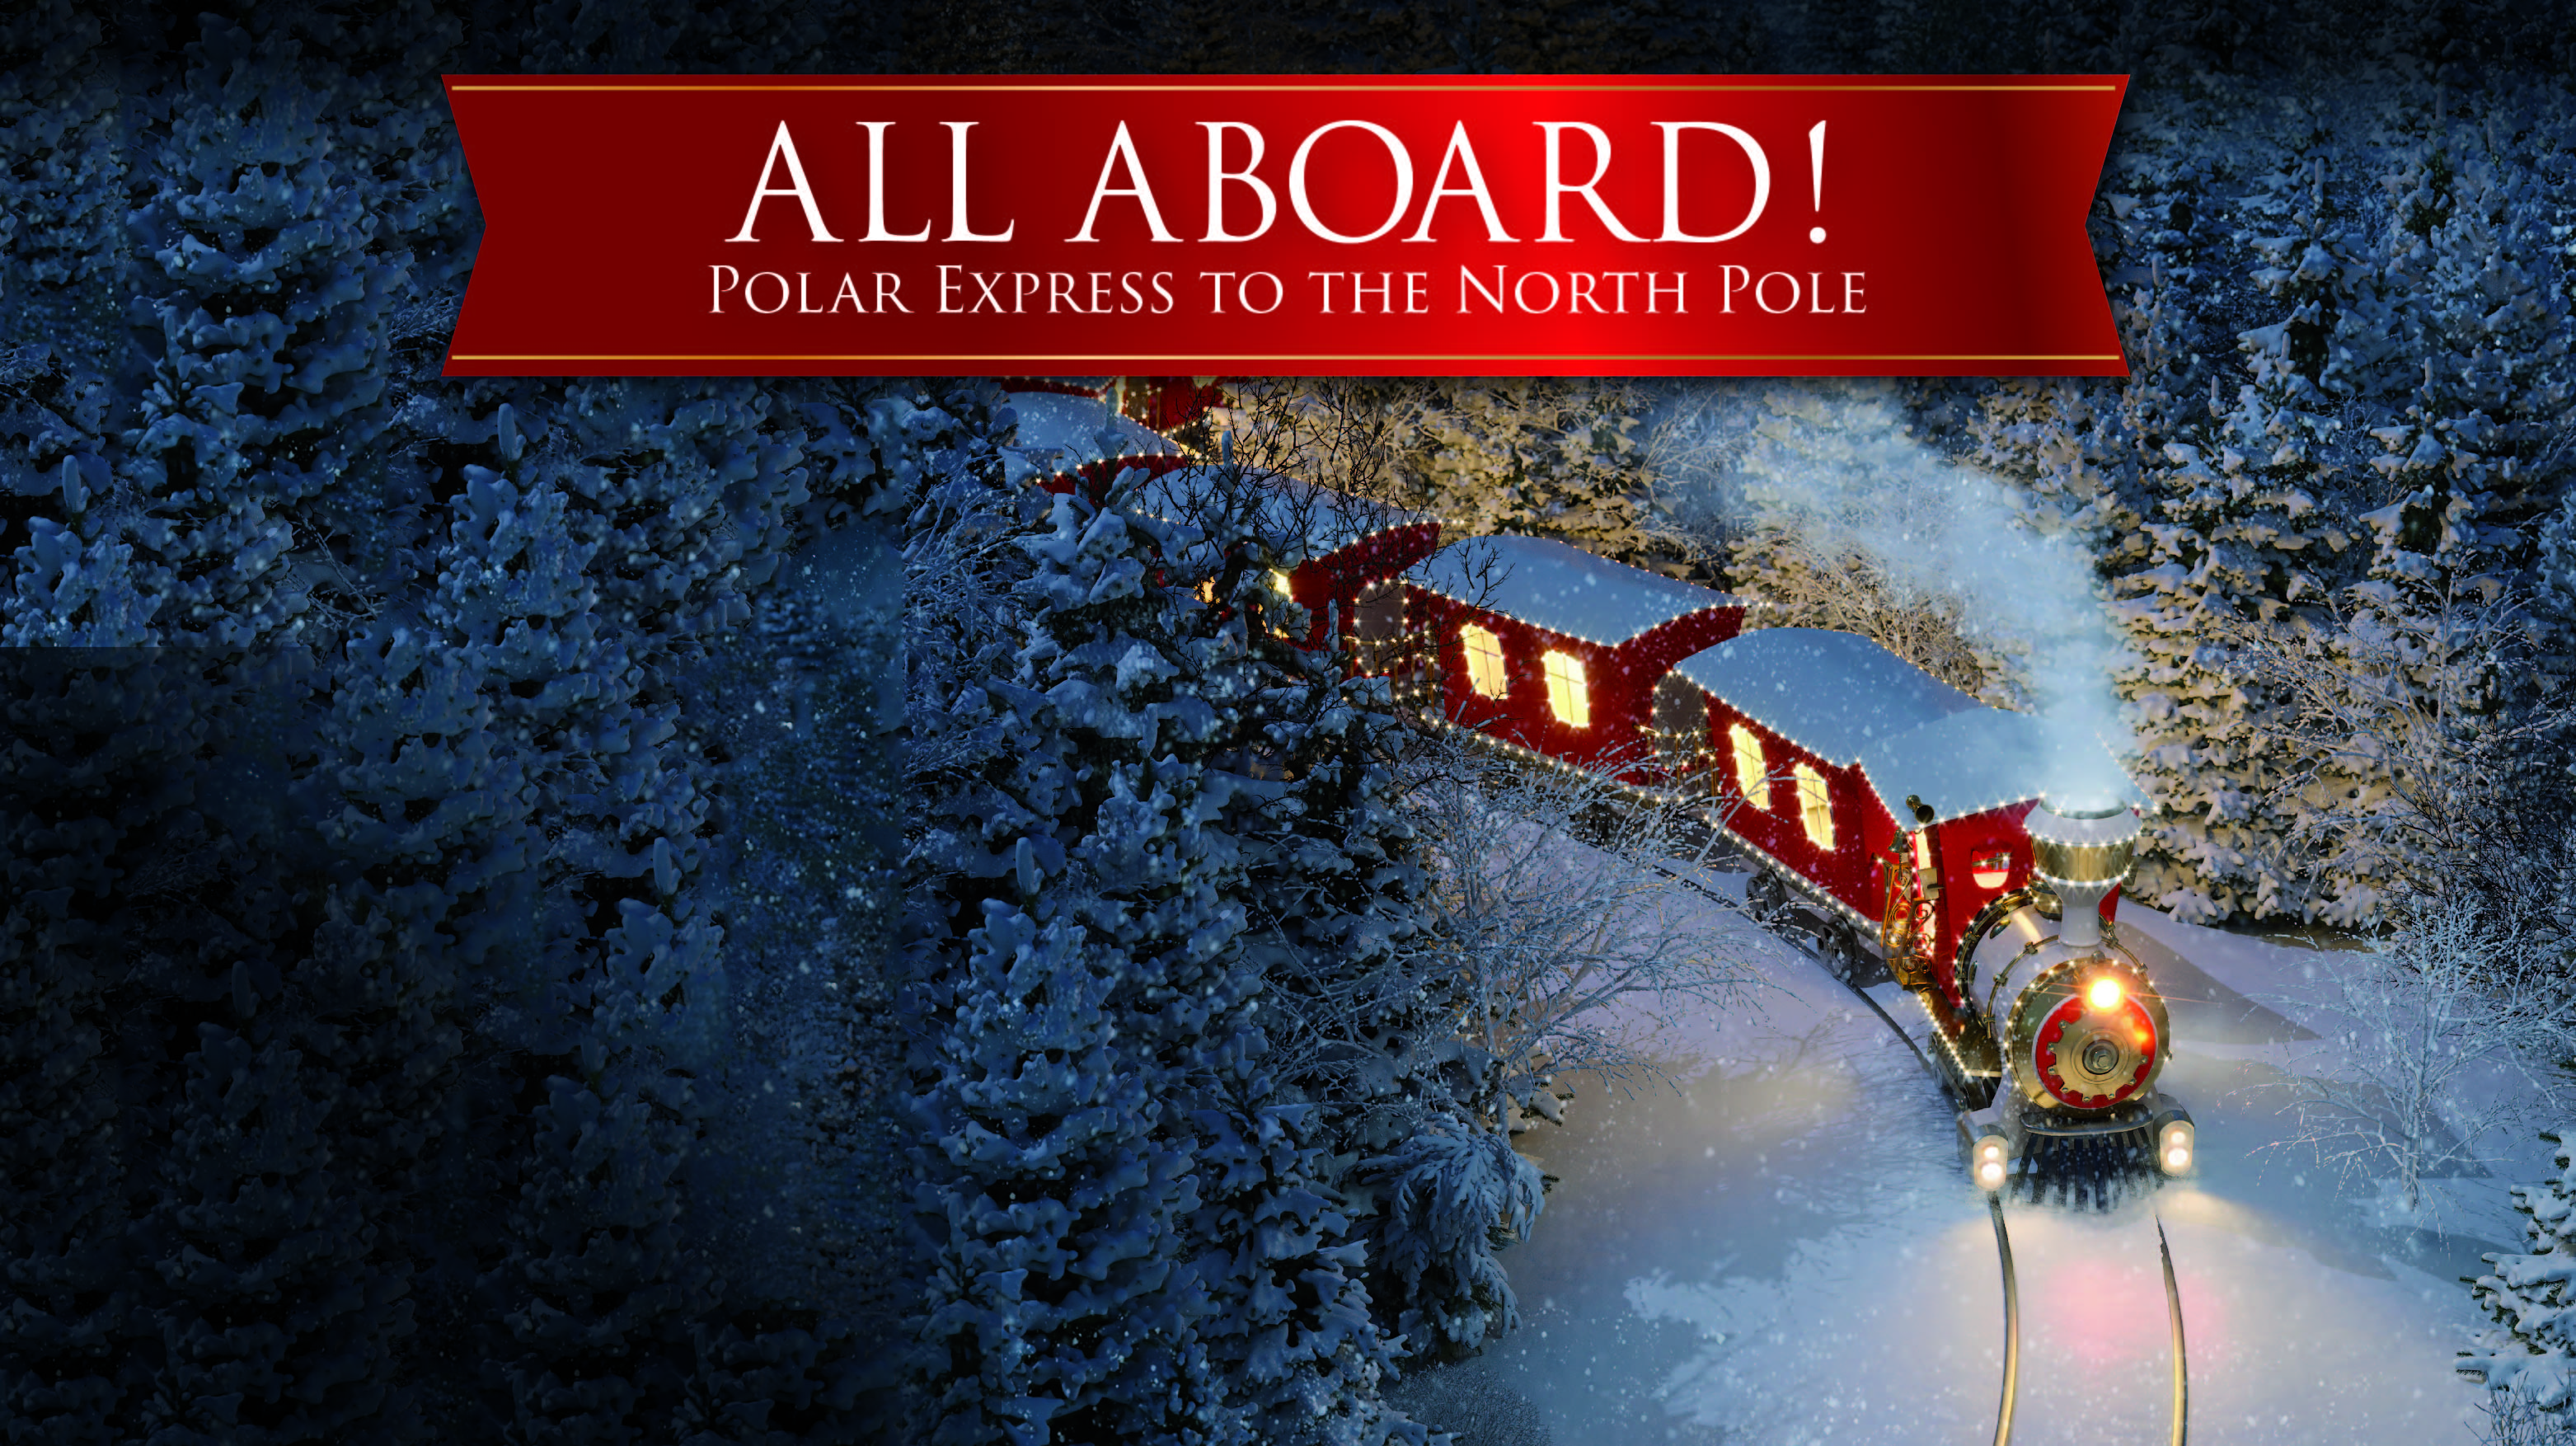 Polar Express to the North Pole